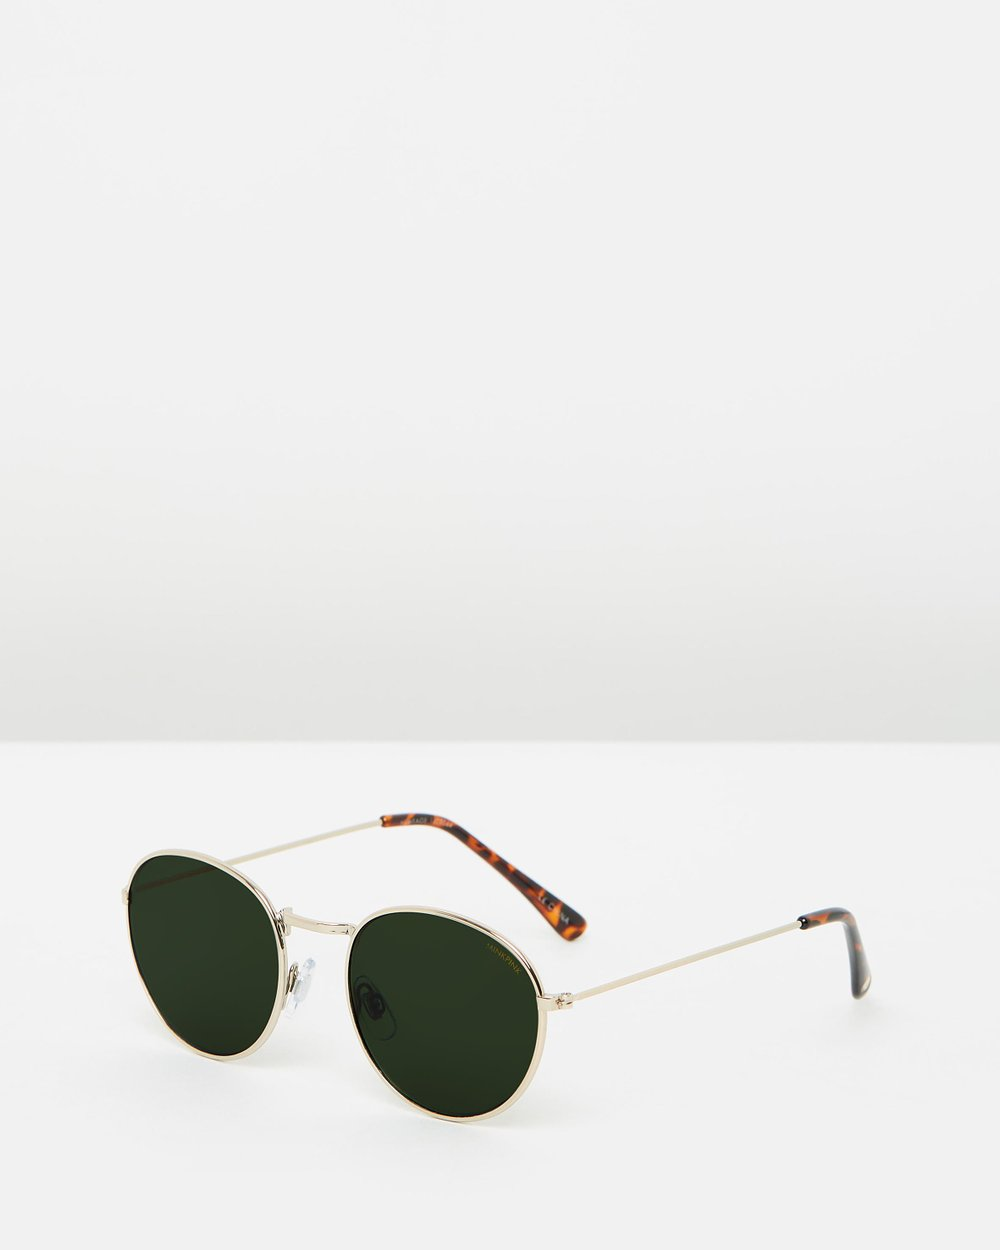 fa054237e9b2 Heritage by MINKPINK Online | THE ICONIC | Australia